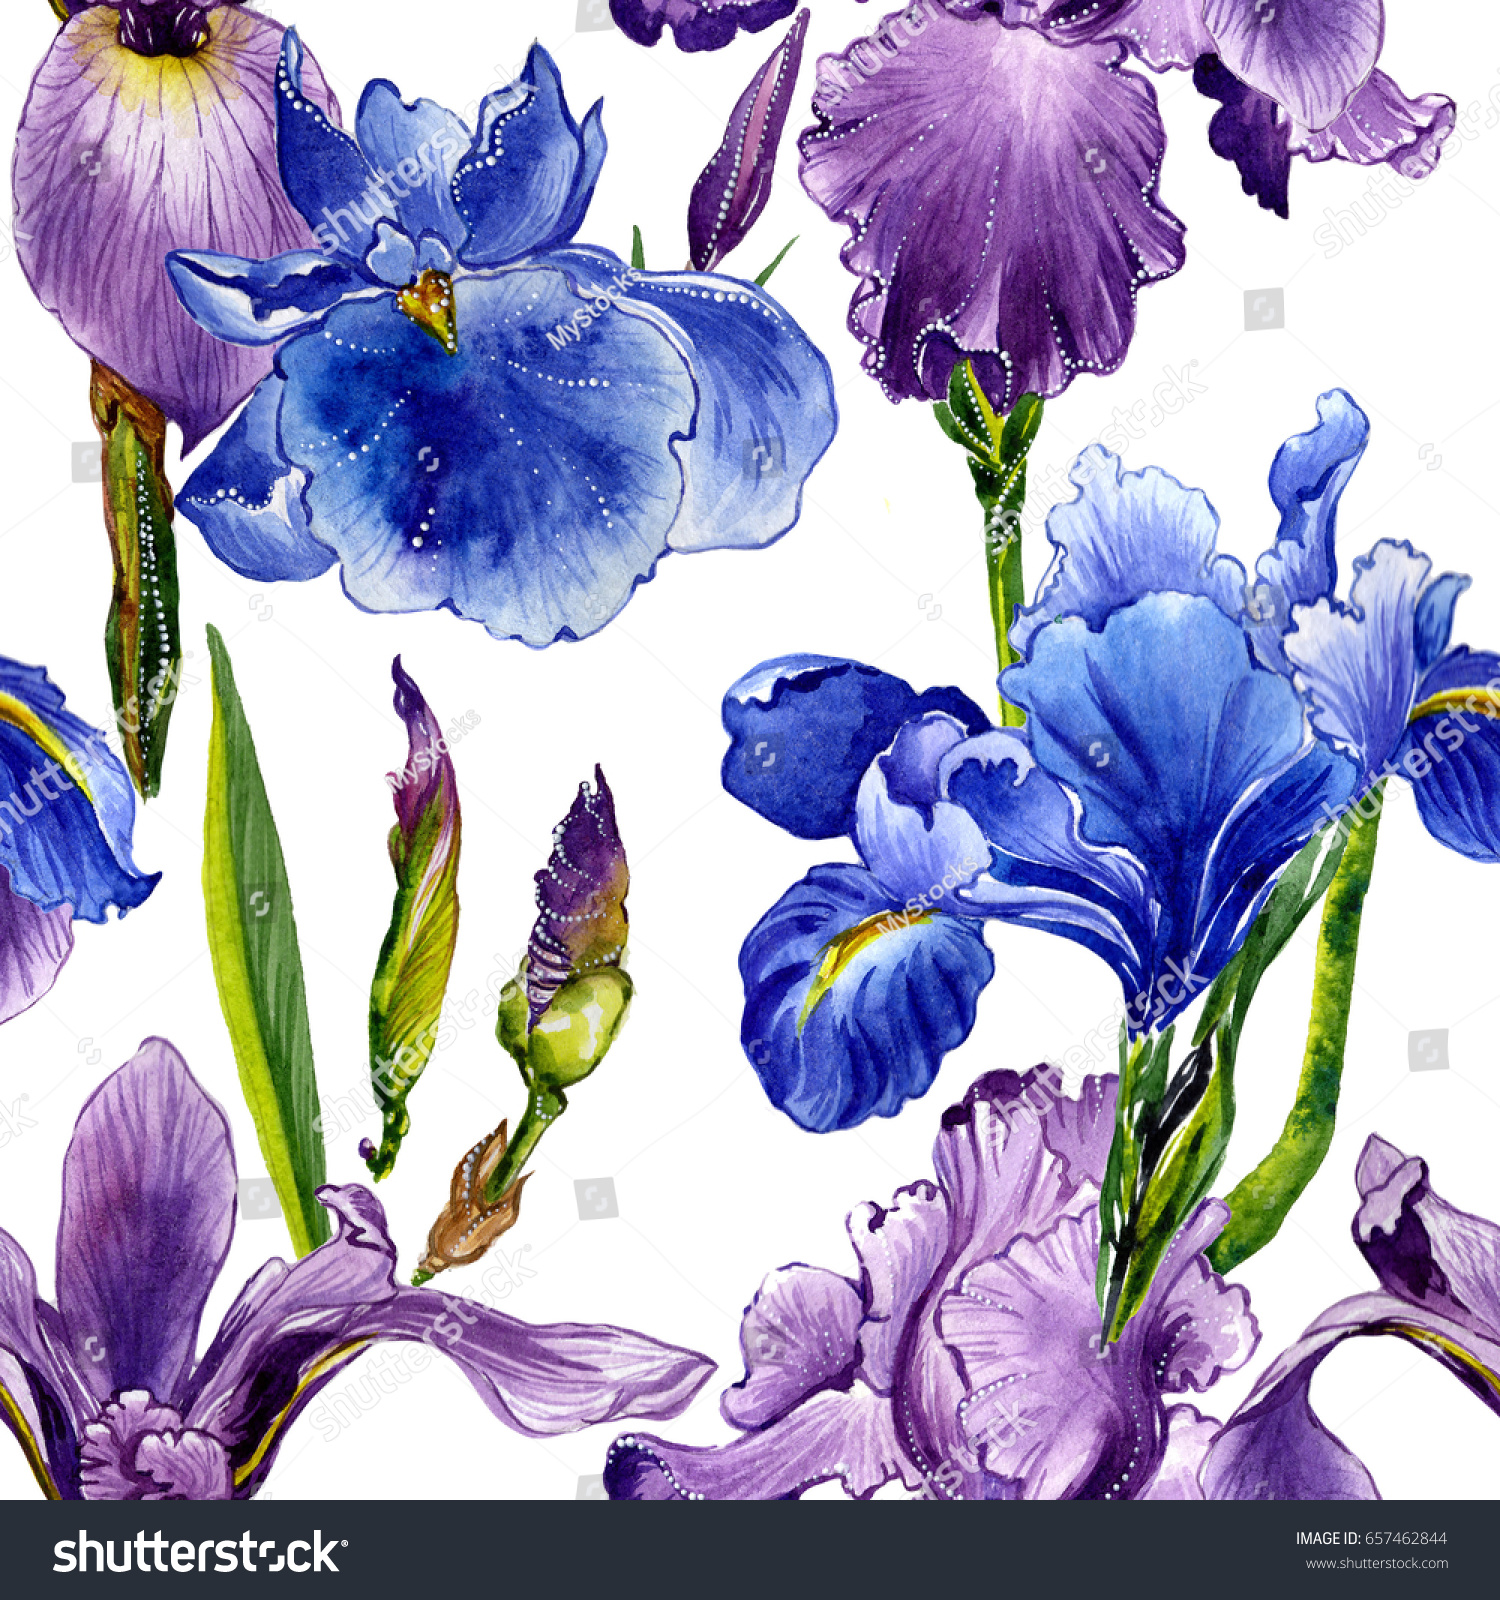 Wildflower iris flower pattern watercolor style stock illustration wildflower iris flower pattern in a watercolor style isolated full name of the plant izmirmasajfo